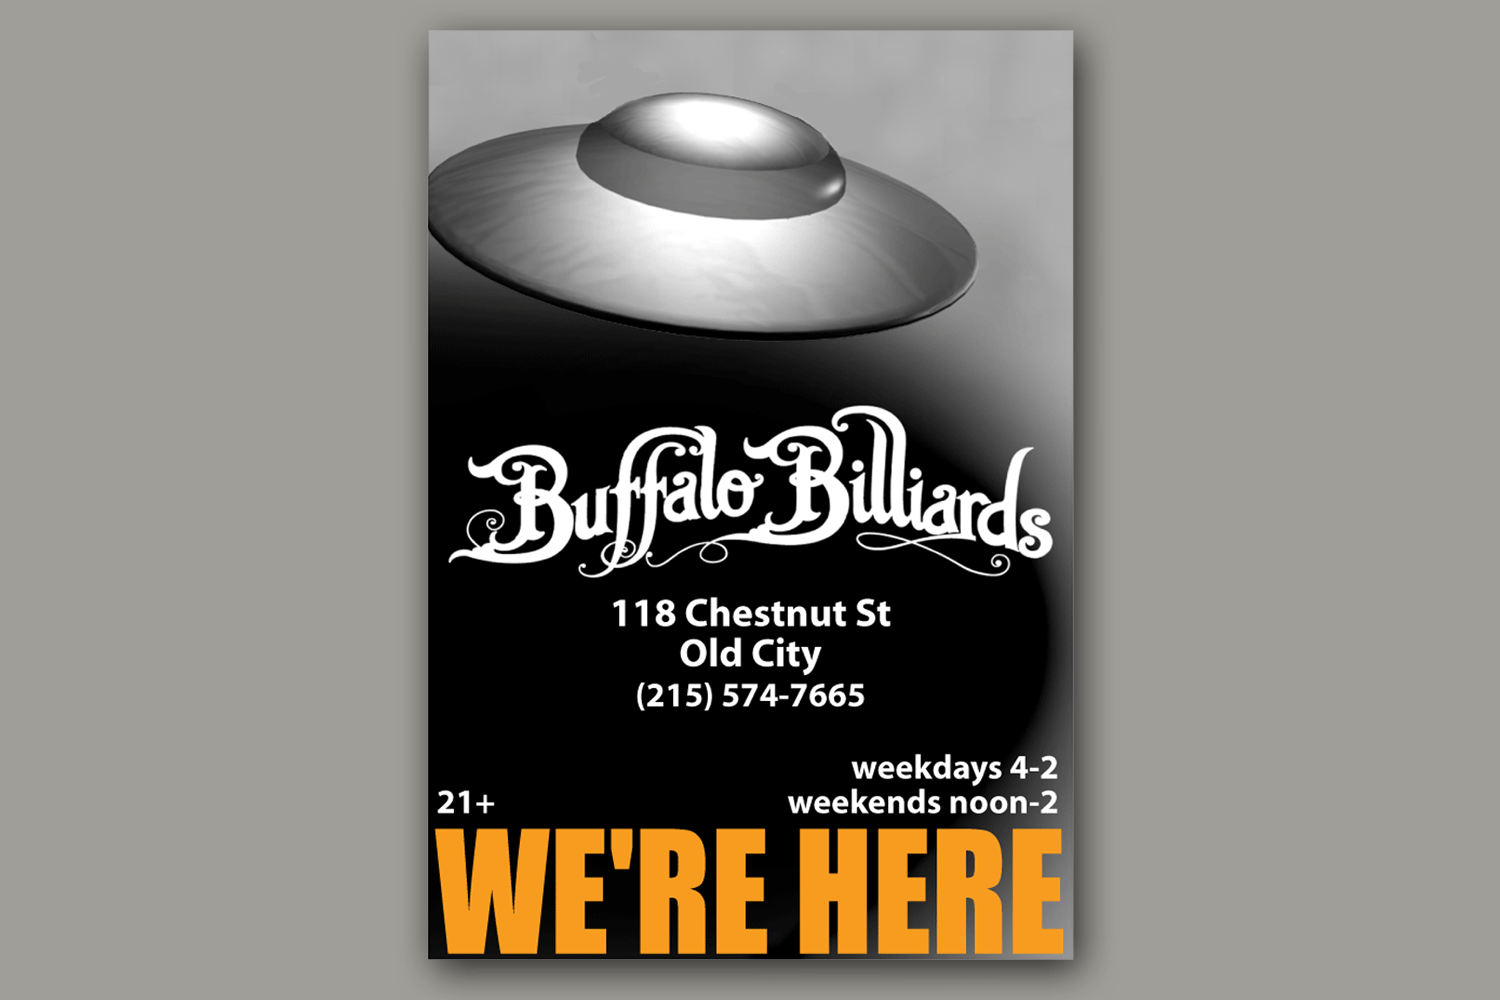 Buffalo Billiards Opening